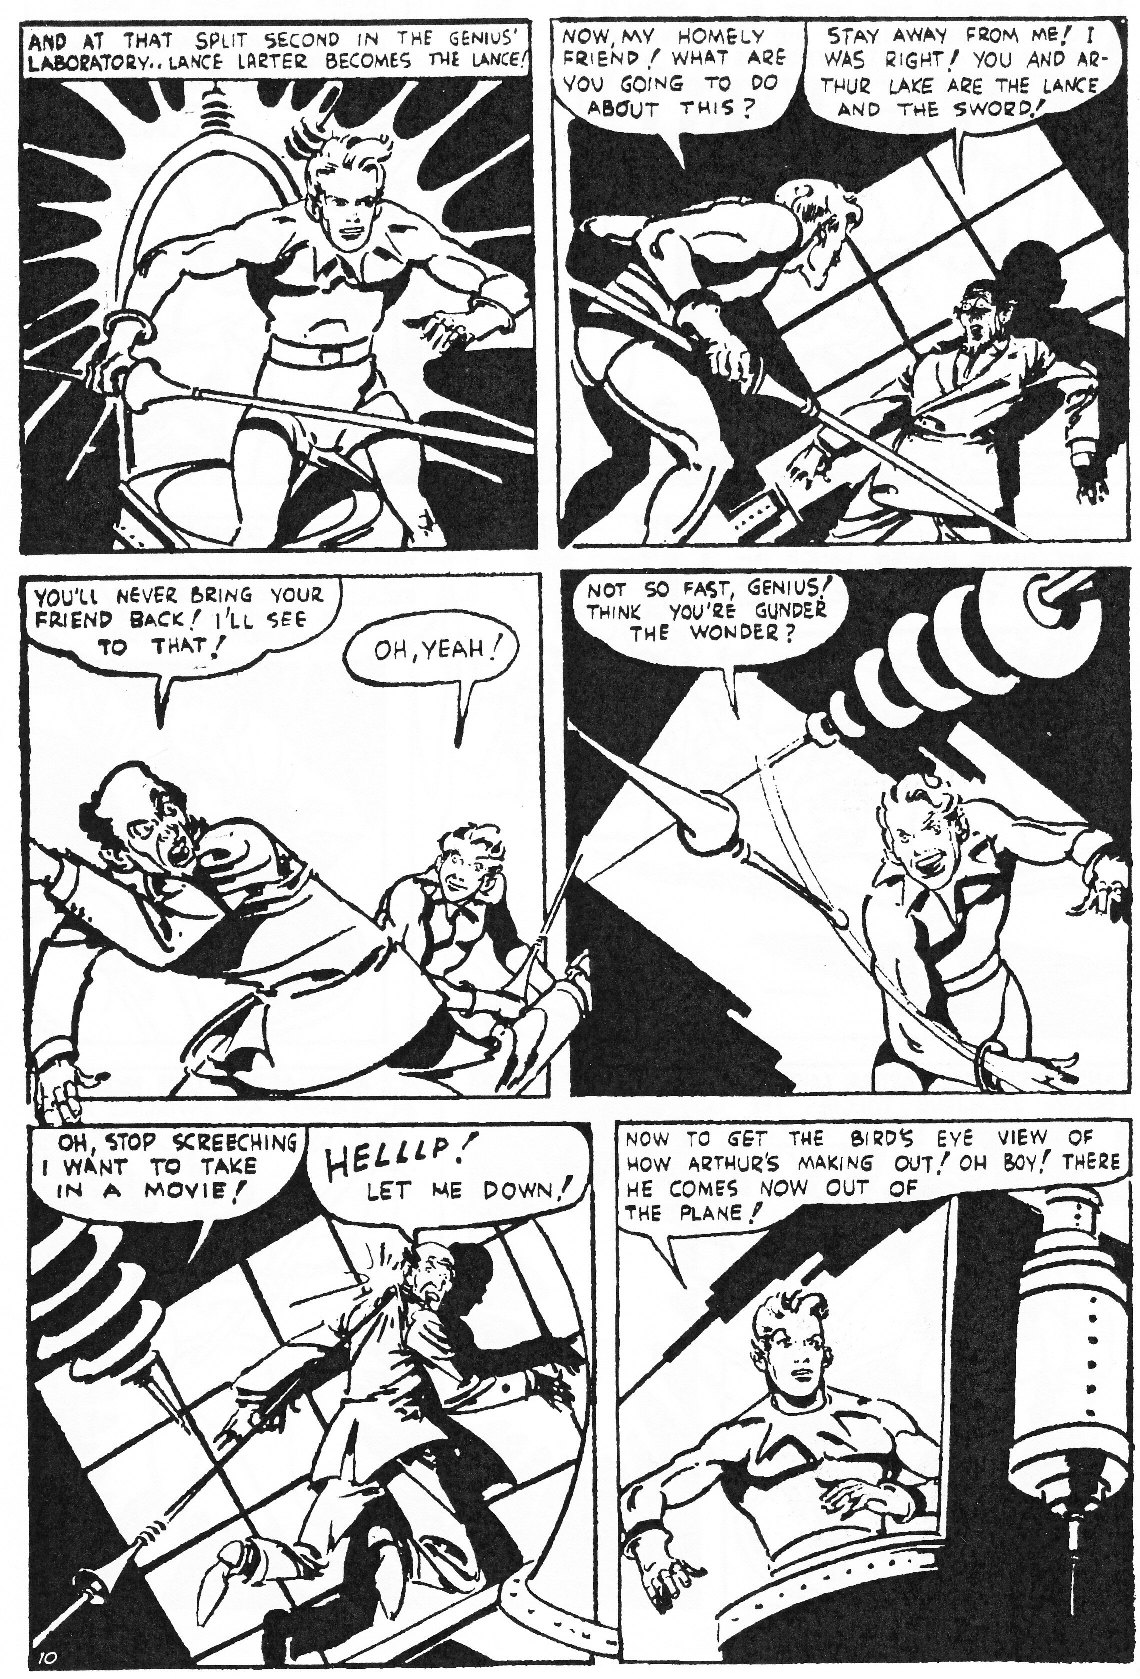 Read online Men of Mystery Comics comic -  Issue #81 - 140